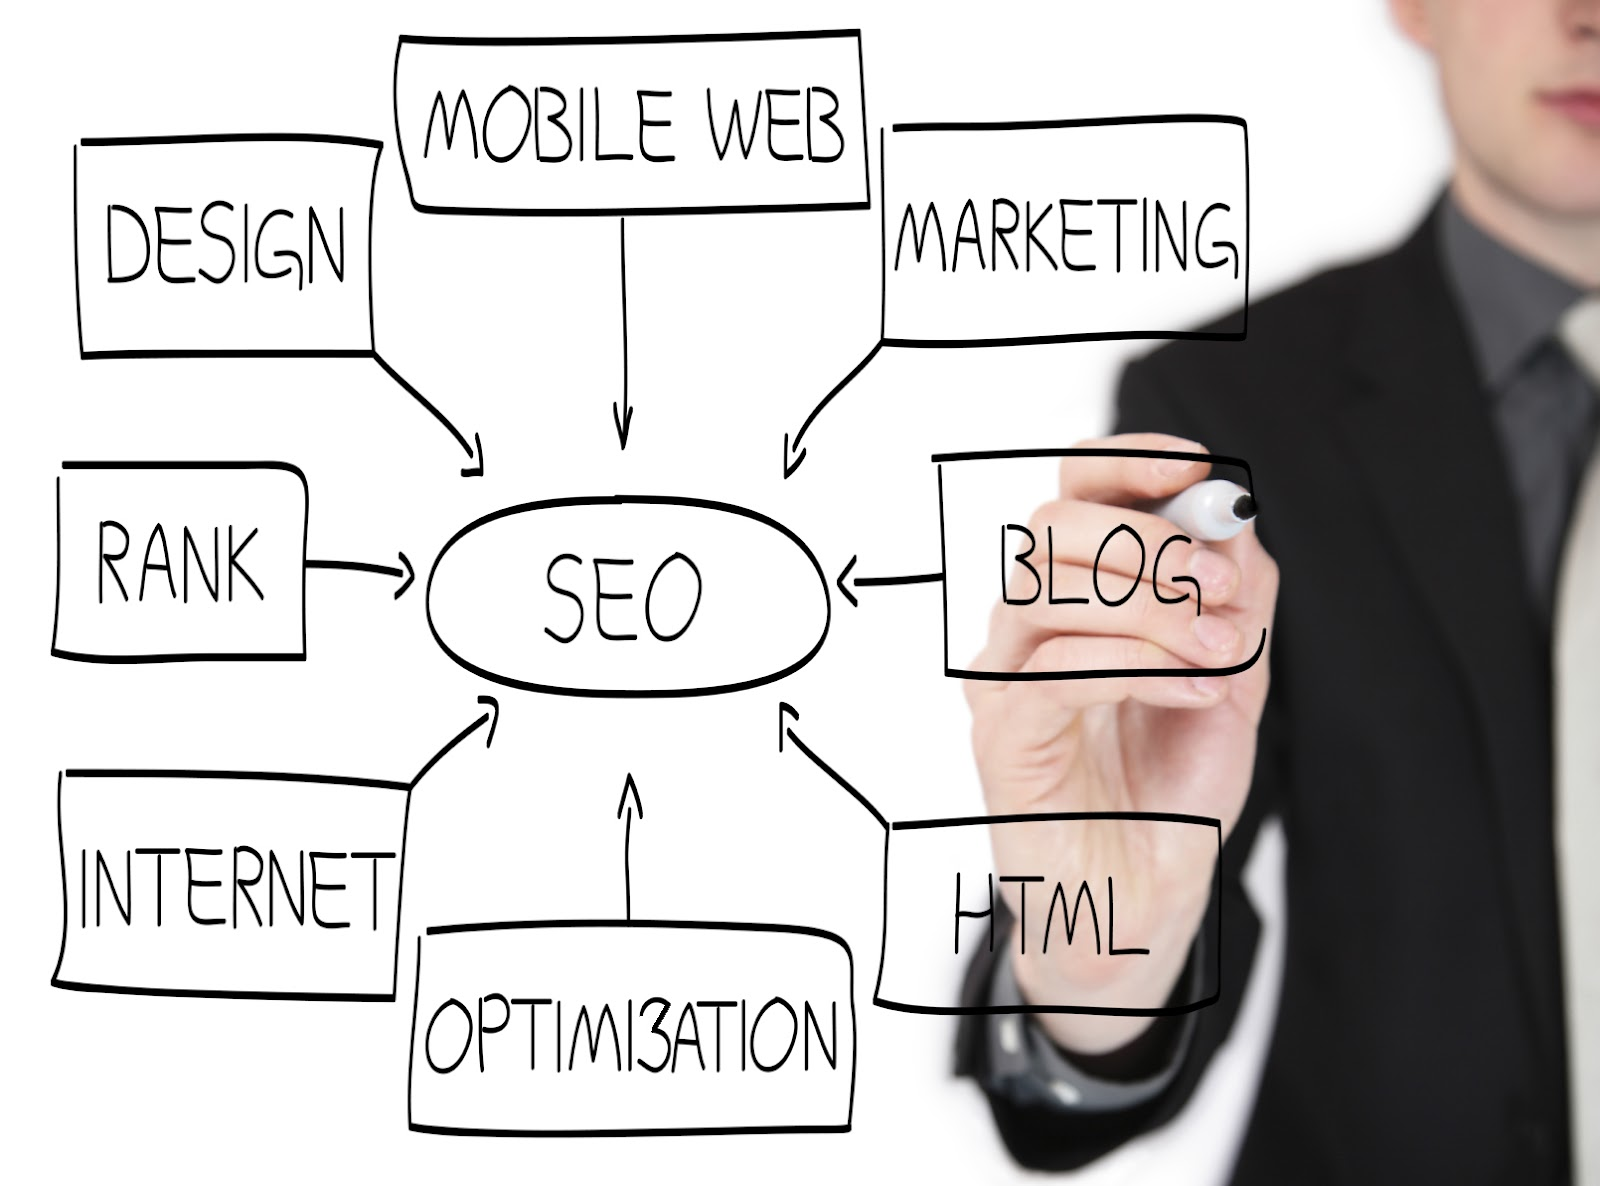 provide over 20,000 Live SEO Blog Comment Backlinks,  Improve Your Link Building Pr 0, 1, 2, 3, 4 - Pr 5